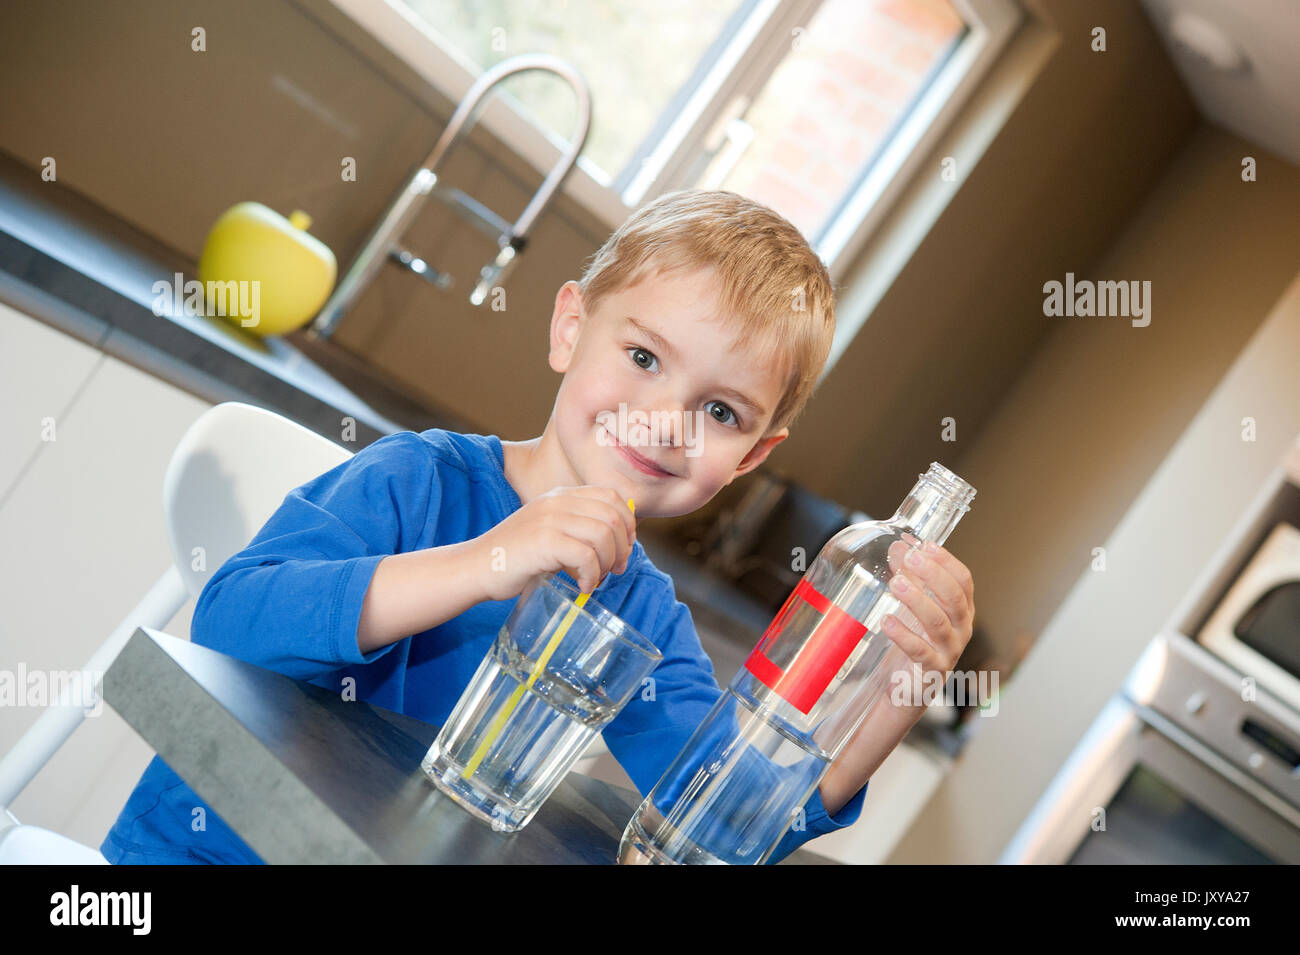 5-year old boy drinking water through a straw - Stock Image